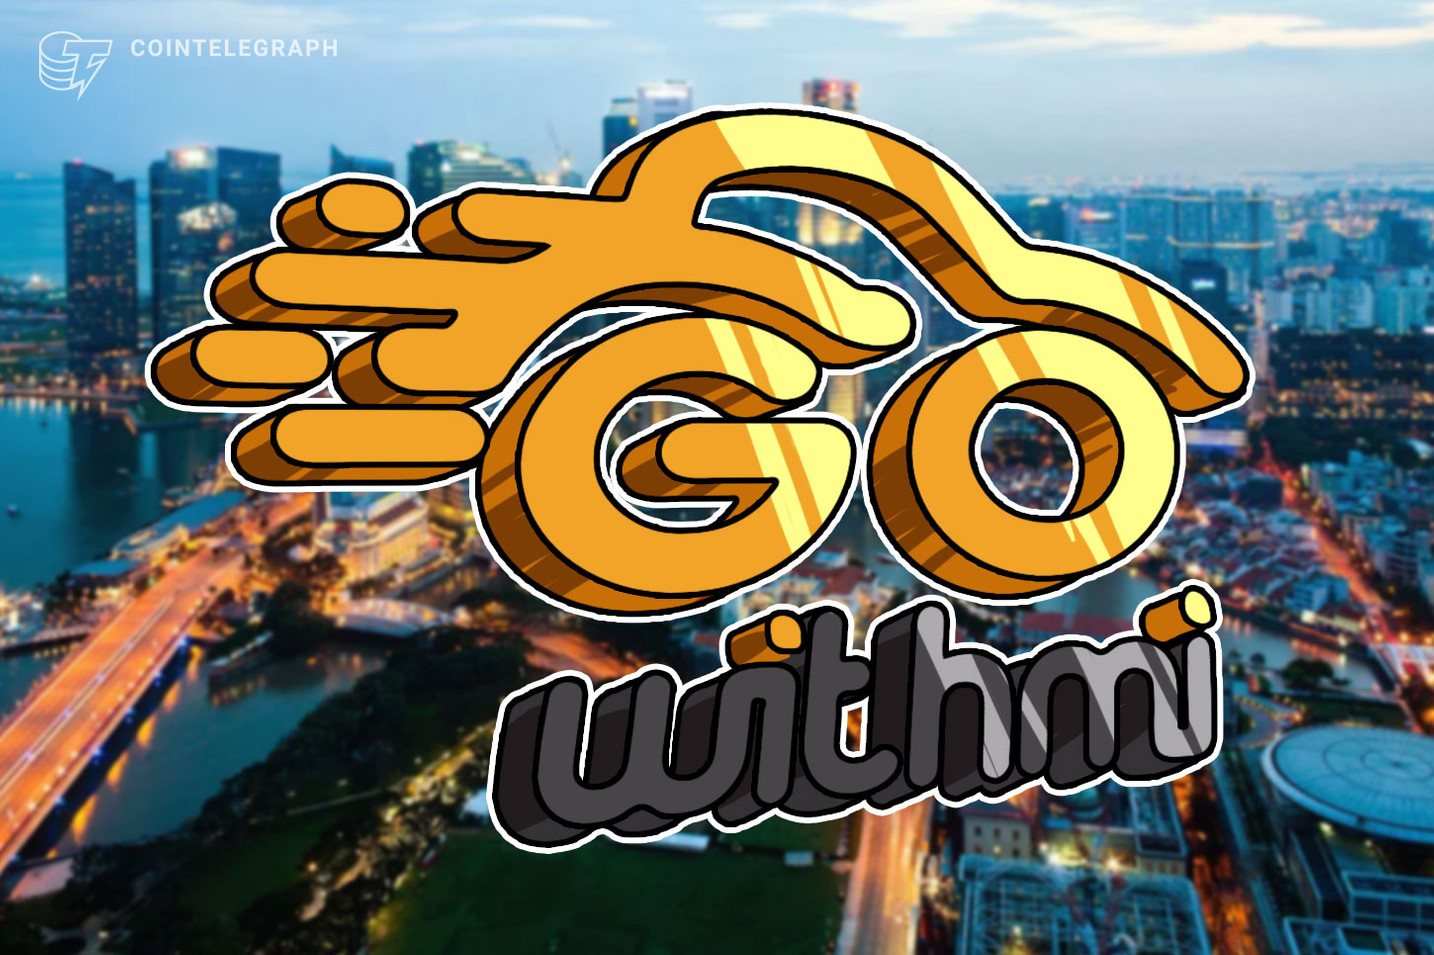 Reshaping Global Map Services-GoWithMi's Decentralized Map Services Usher in Blockchain Platform Deployed Widely to the Necessities of Life